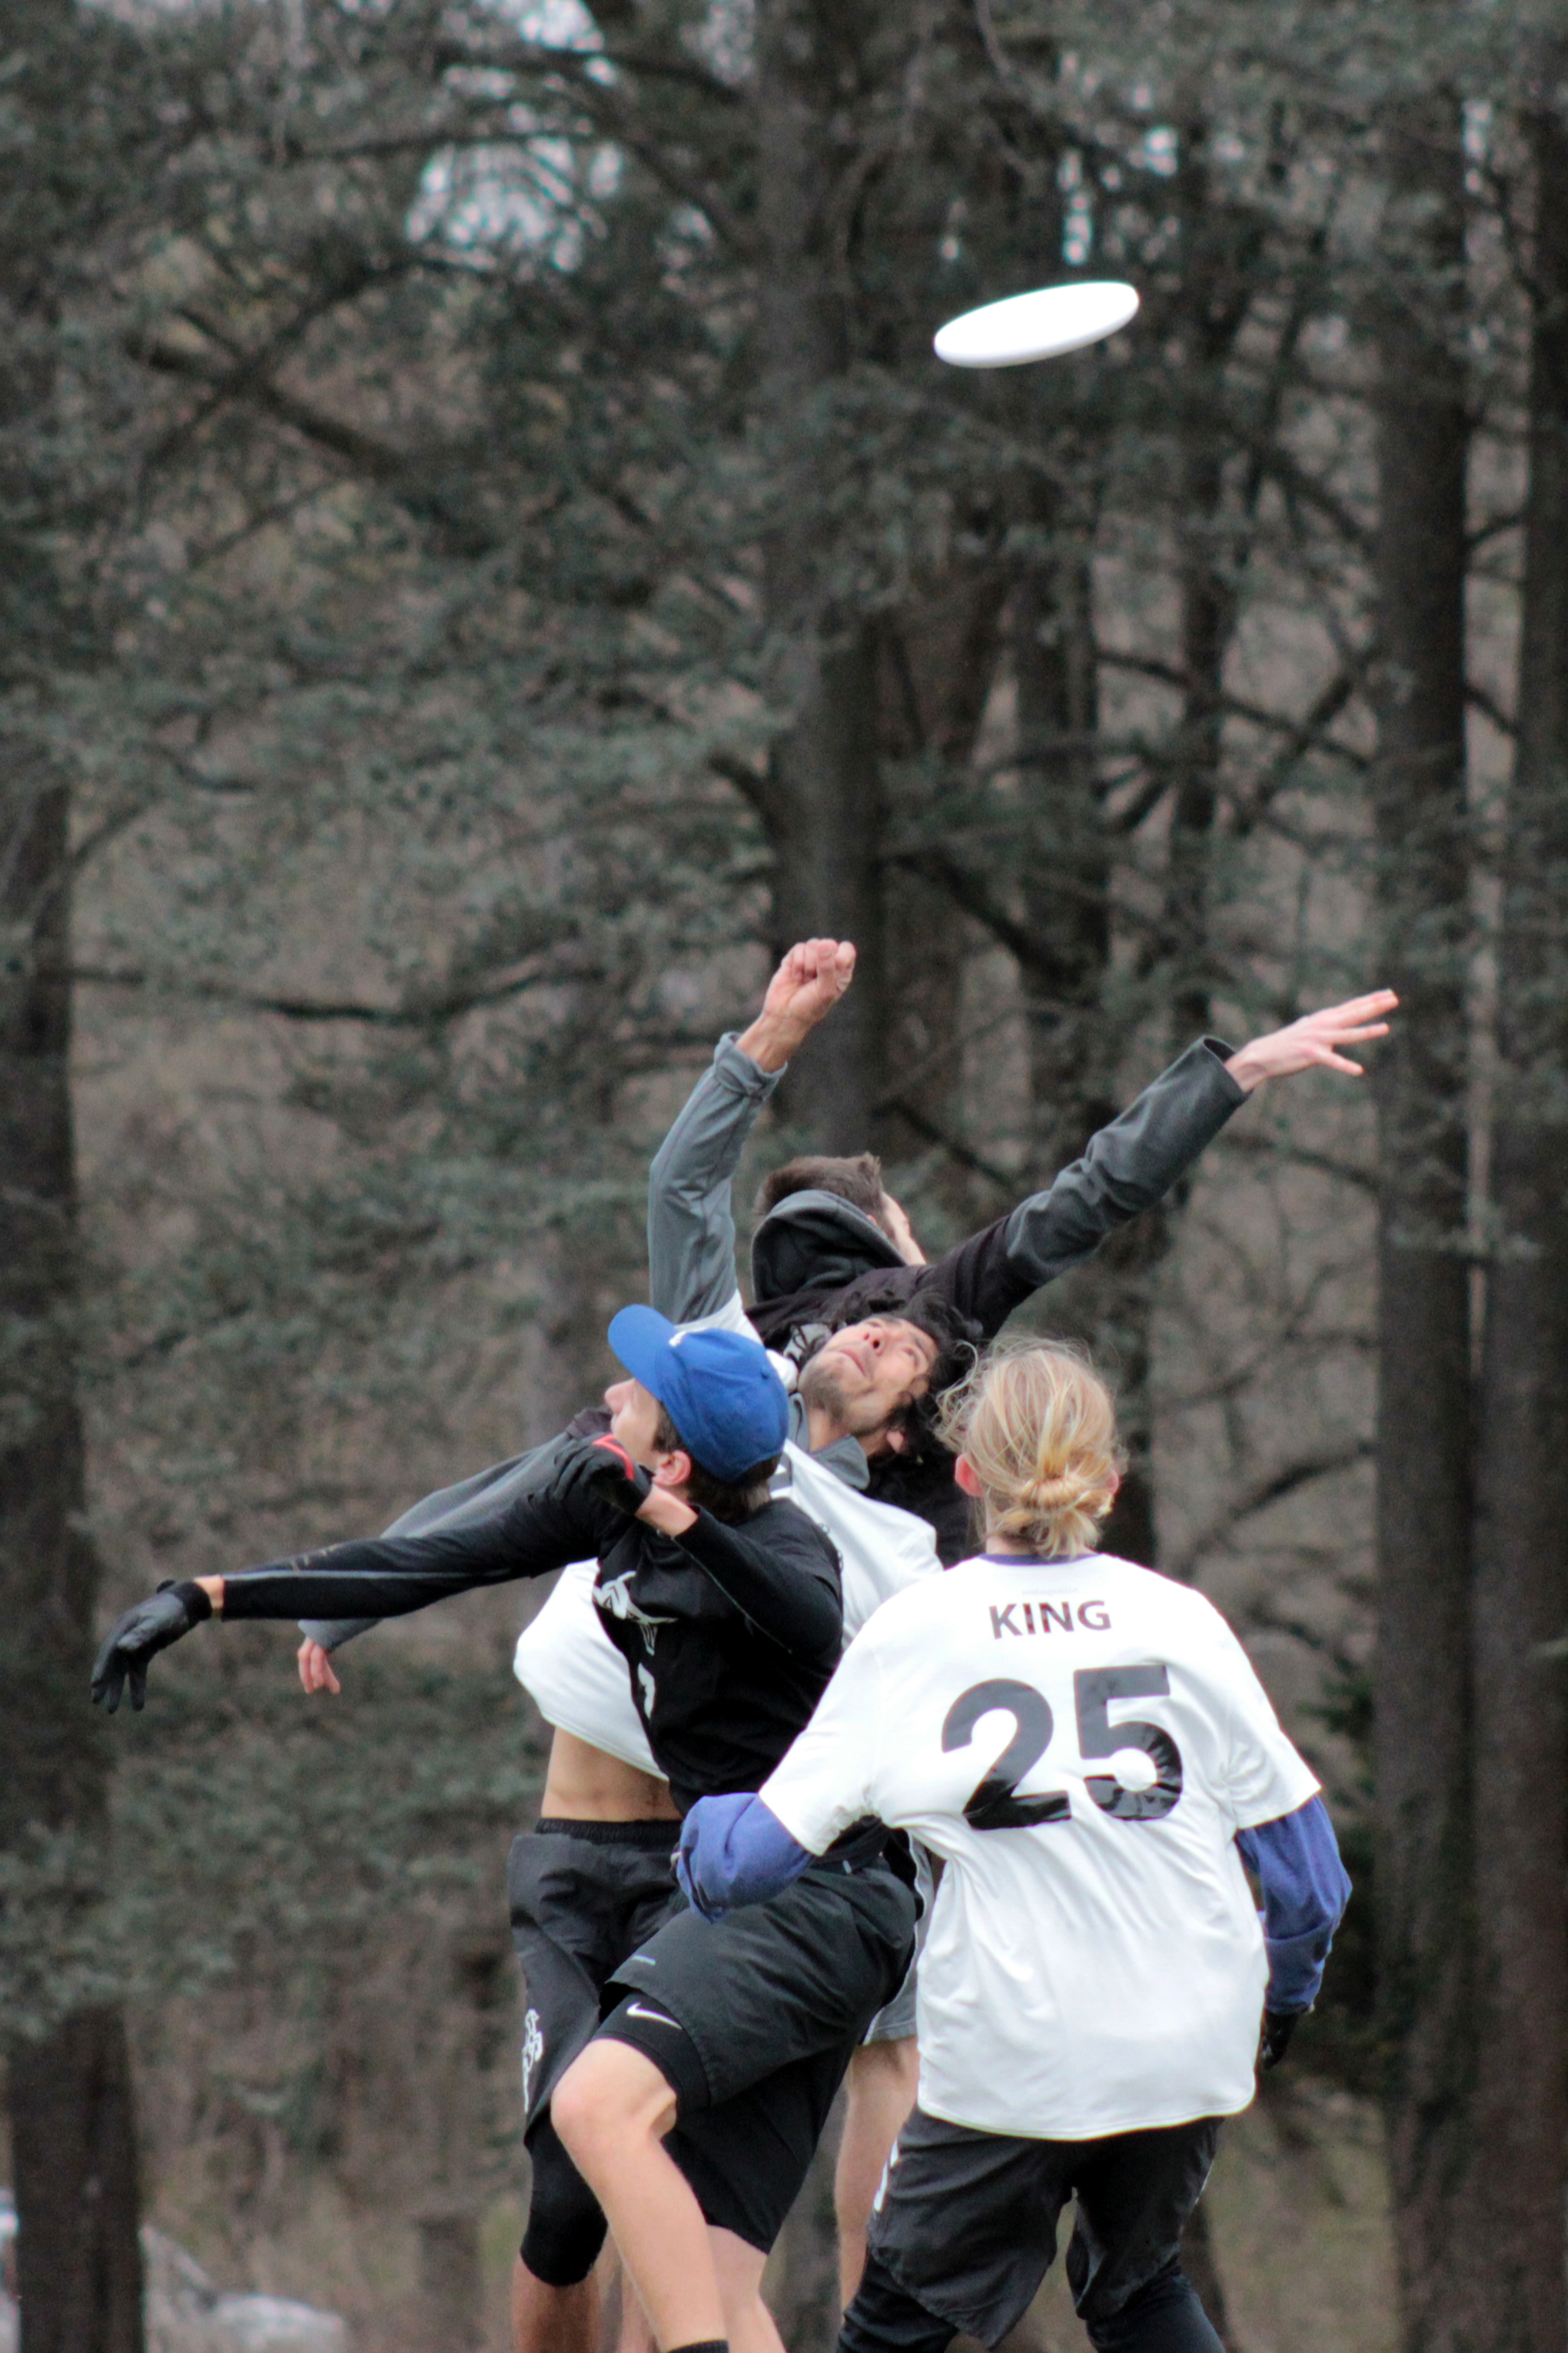 Several players jump for the disc